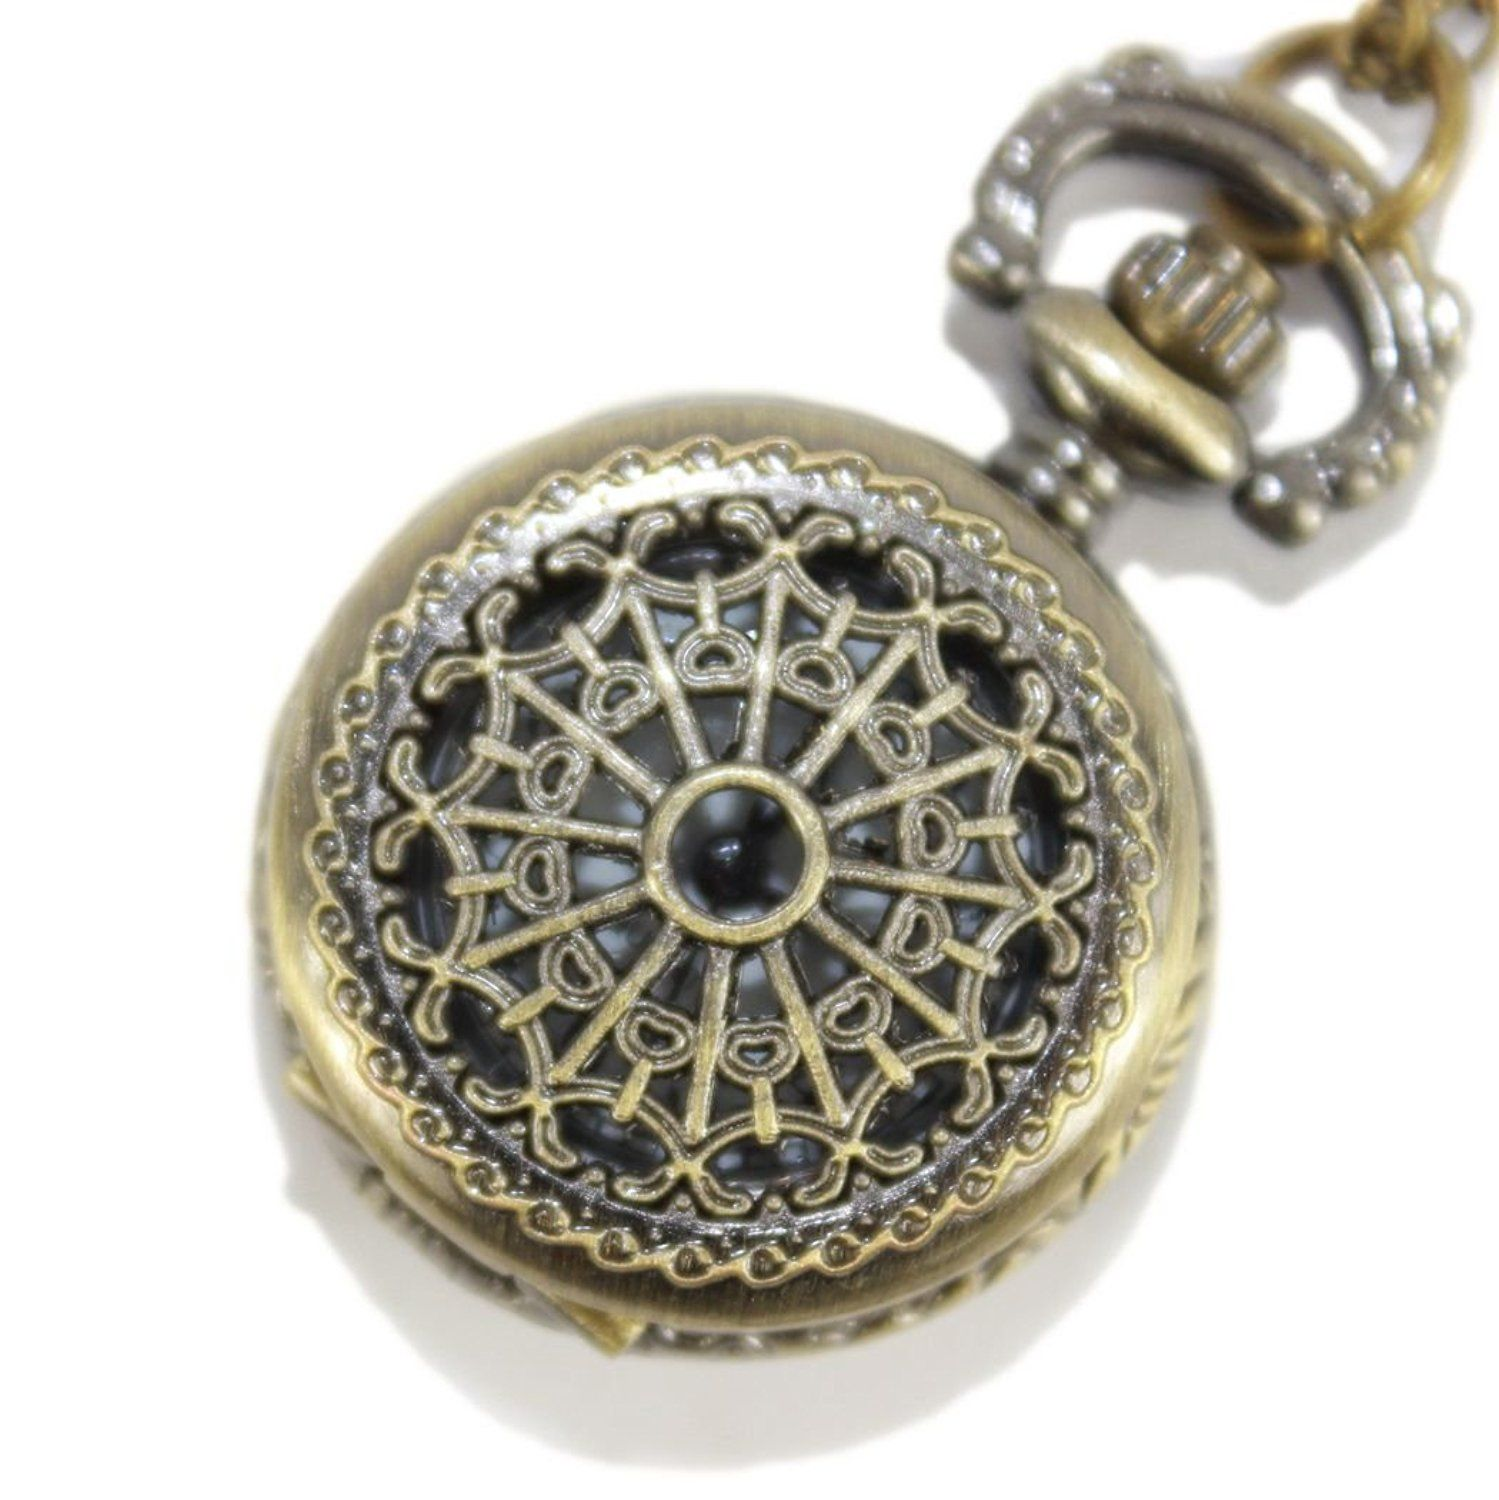 Small Size Cobweb Pocket Watch -- Review more details here